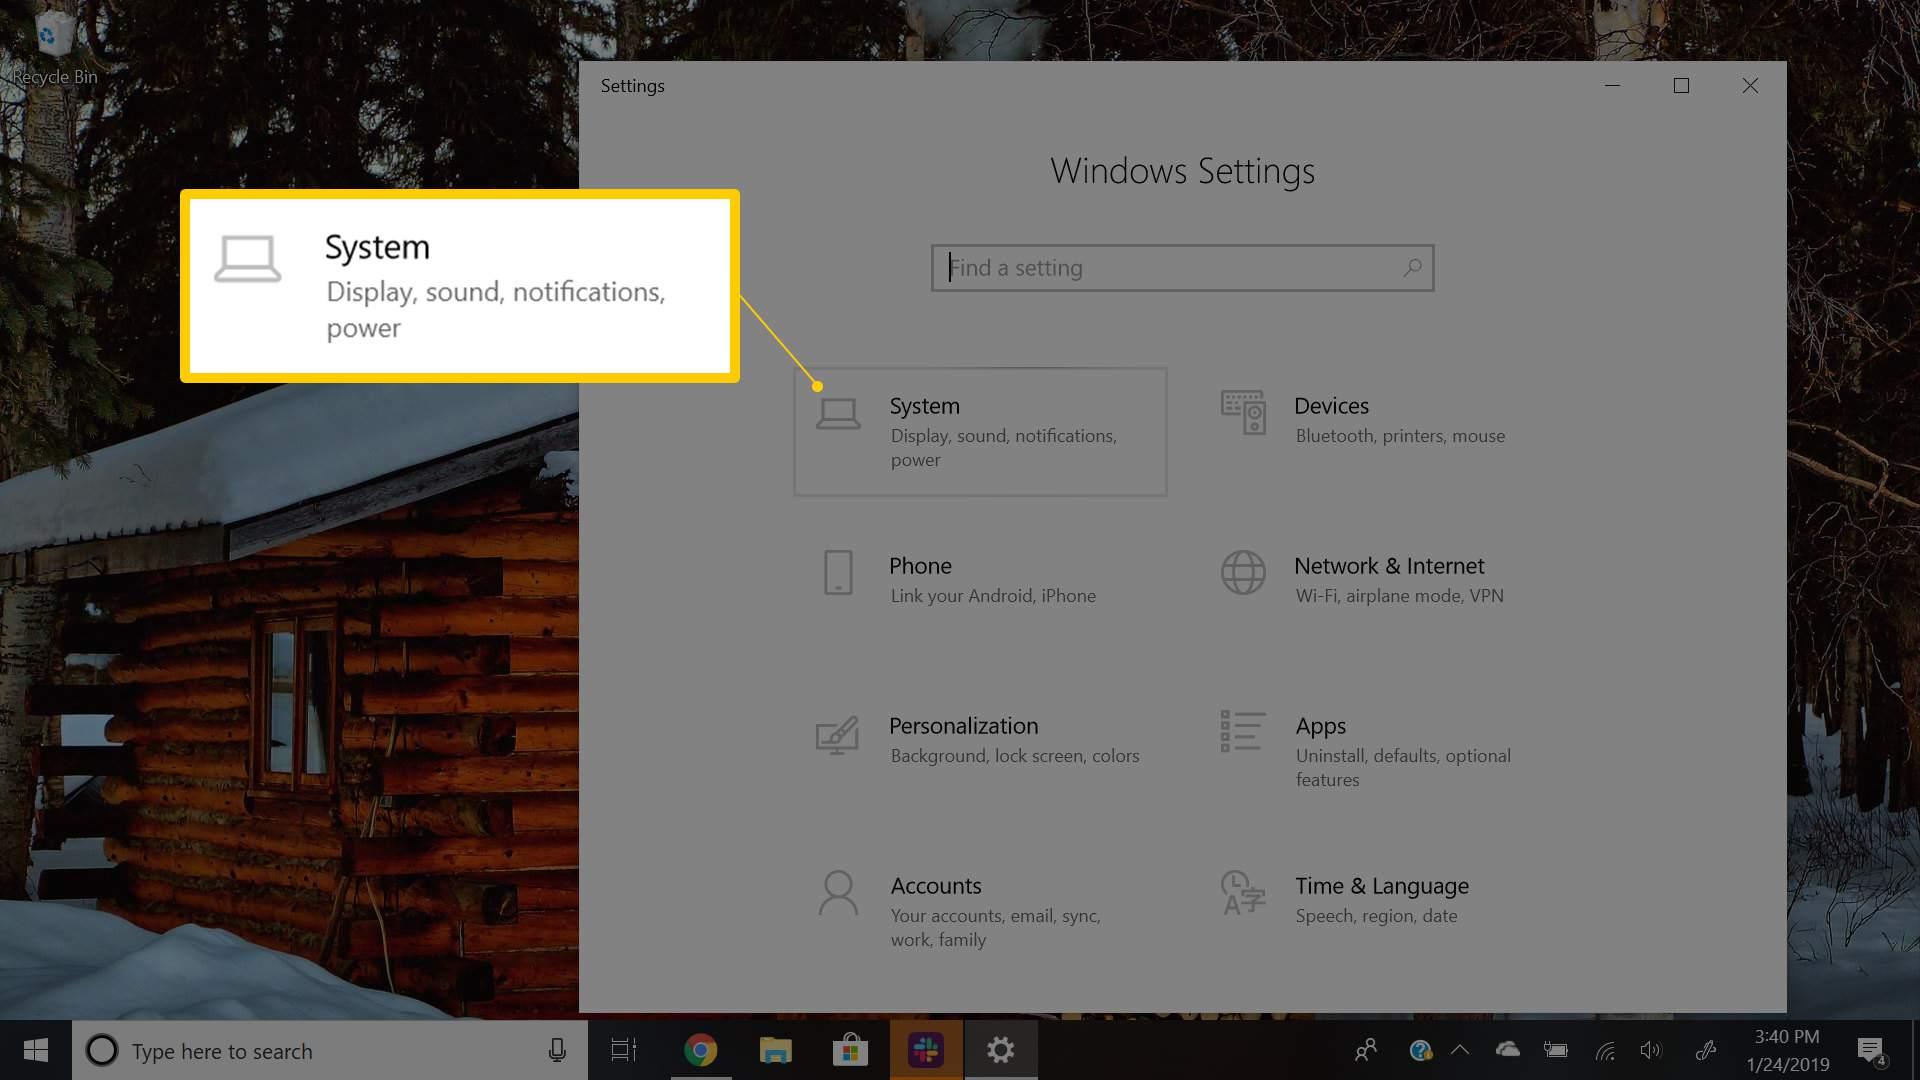 Configure Outlook Email Notifications in Windows 10